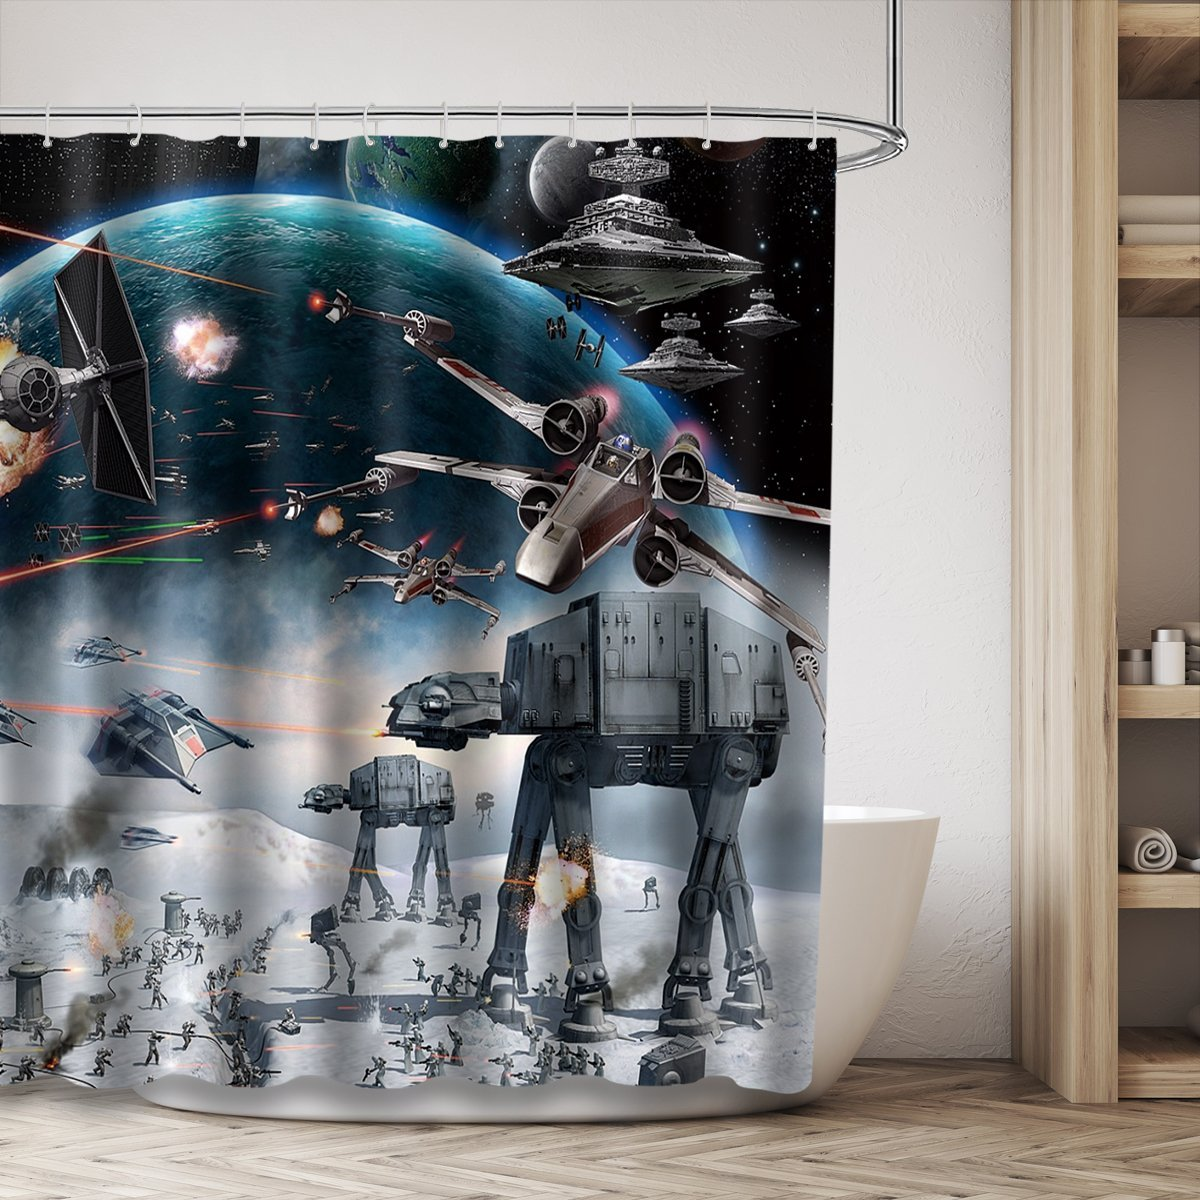 LIGHTINHOME Stormtroopers In Star War Movie Shower Curtain Panel White And Black Soldier Decor Fabric Bathroom Set Polyester Waterproof 72x72 Inch With 12-Pack Plastic Shower Hooks by LIGHTINHOME